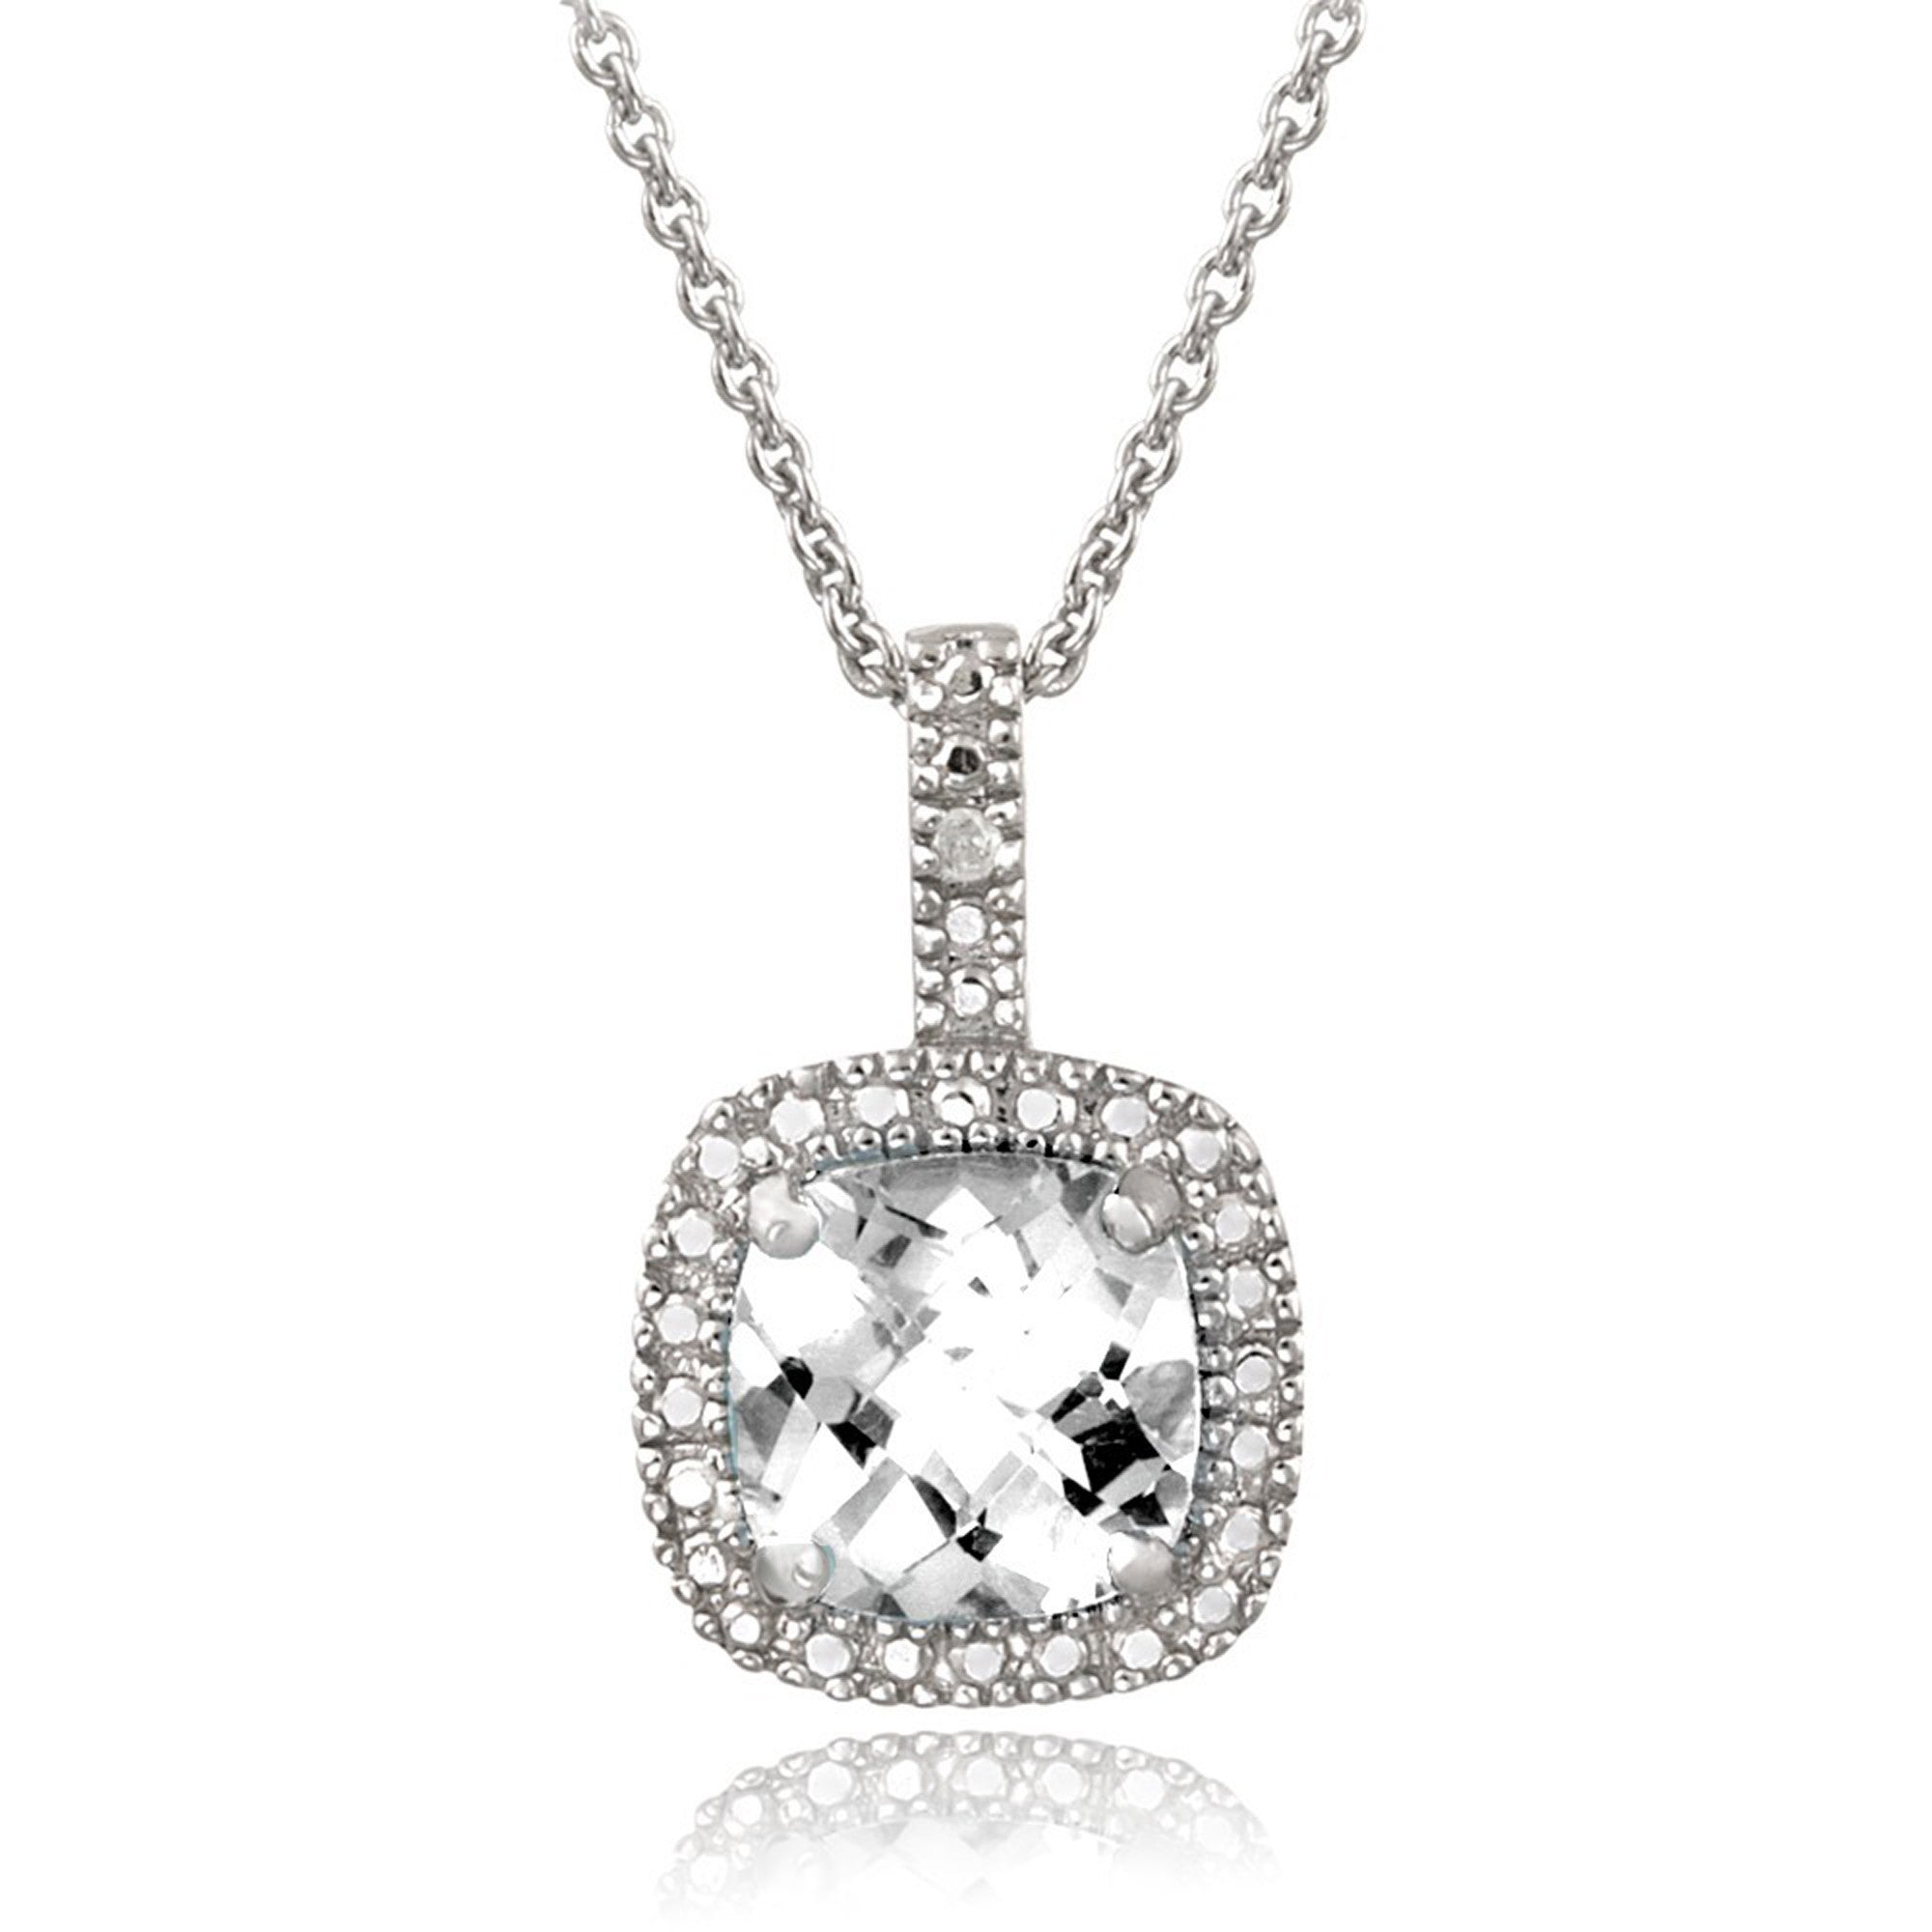 Square Necklace With Gemstone & Diamond Accents in Sterling Silver - White Topaz